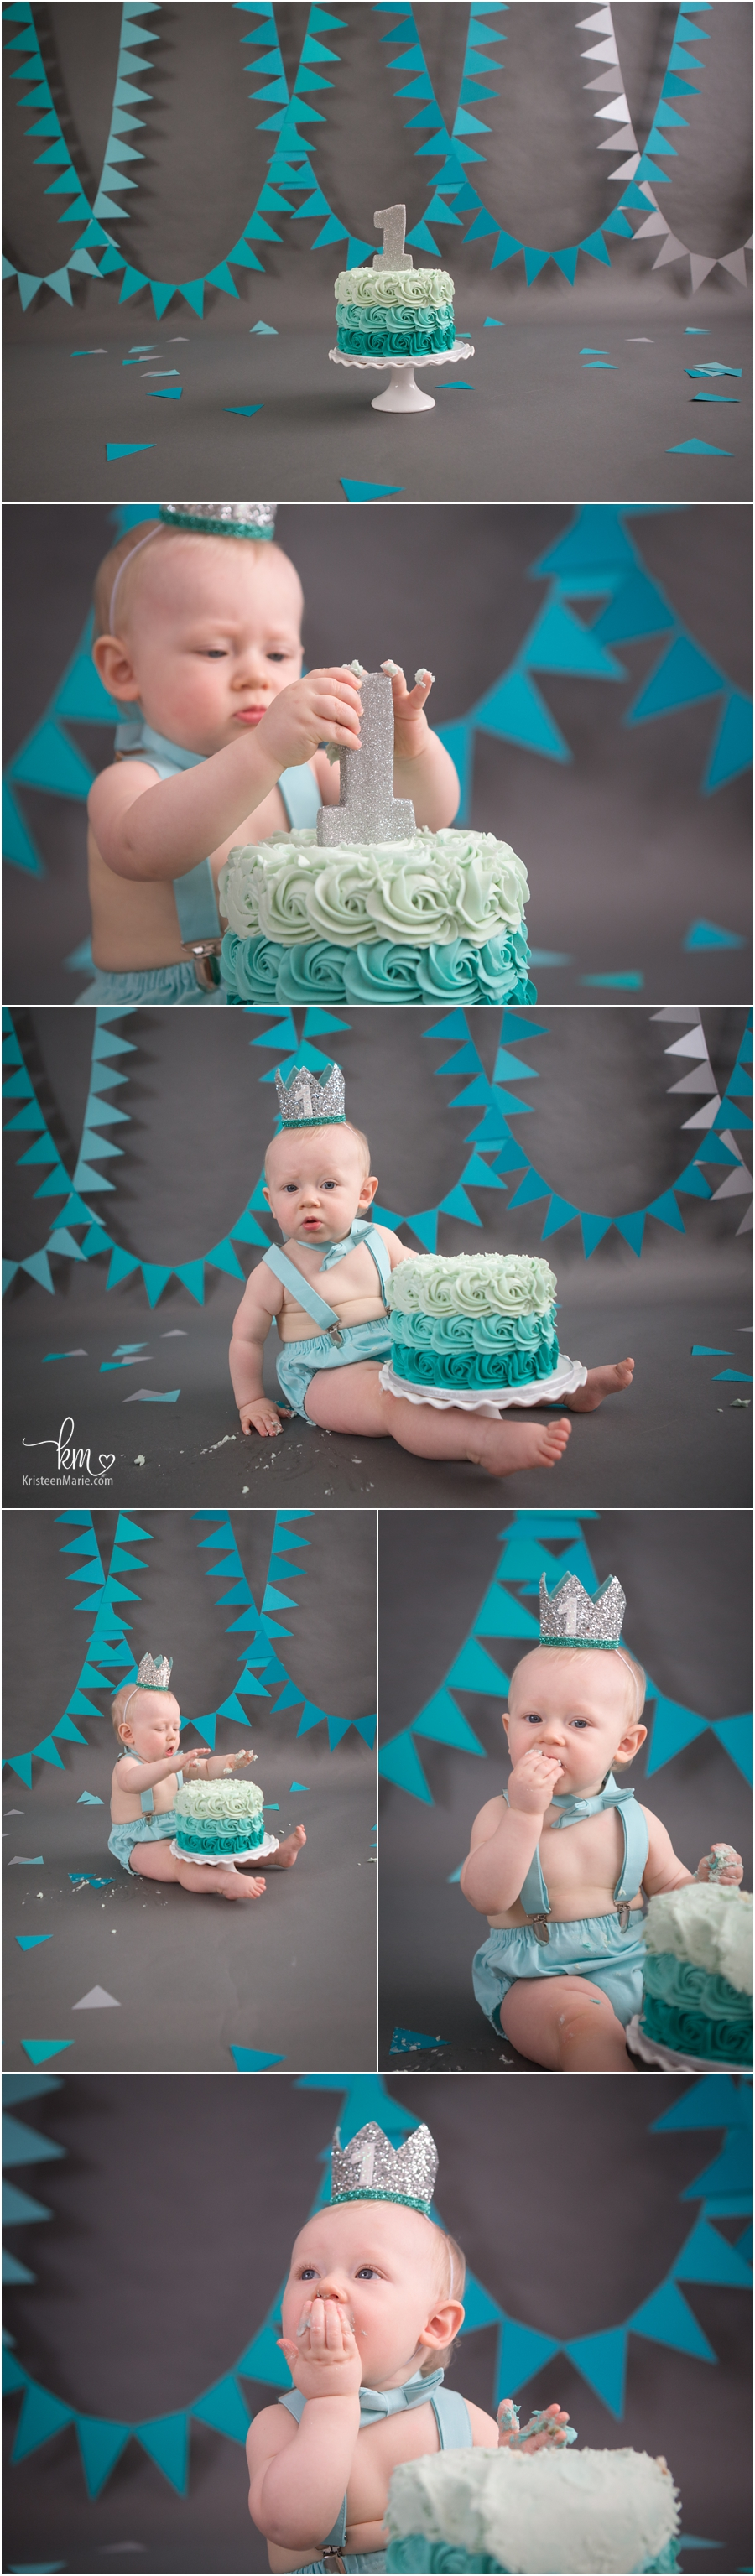 teal ombre cake smash photography for boy's first birthday